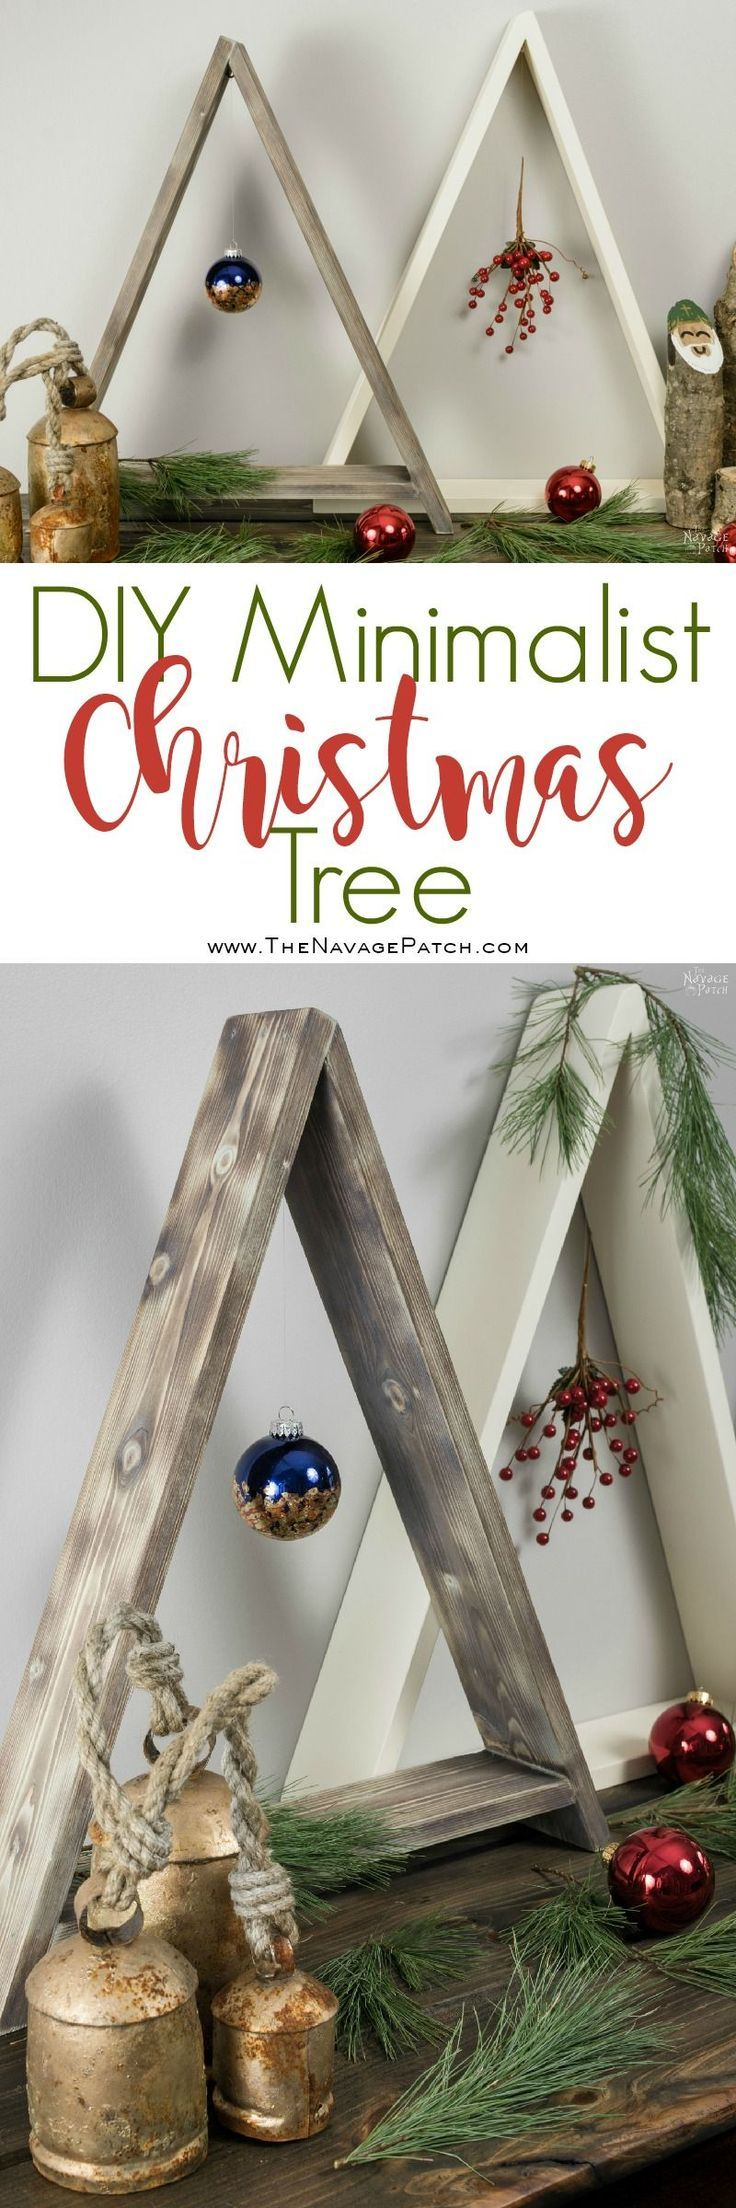 DIY Minimalist Wooden Christmas Tree | The simplest and easiest DIY wooden Christmas tree | How to make a wooden Christmas tree | Easy and budget friendly DIY Christmas decorations | #ChristmasDecor #DIYChristmasdecor #HandmadeChristmas #Christmascrafts #MinimalistHome | TheNavagePatch.com